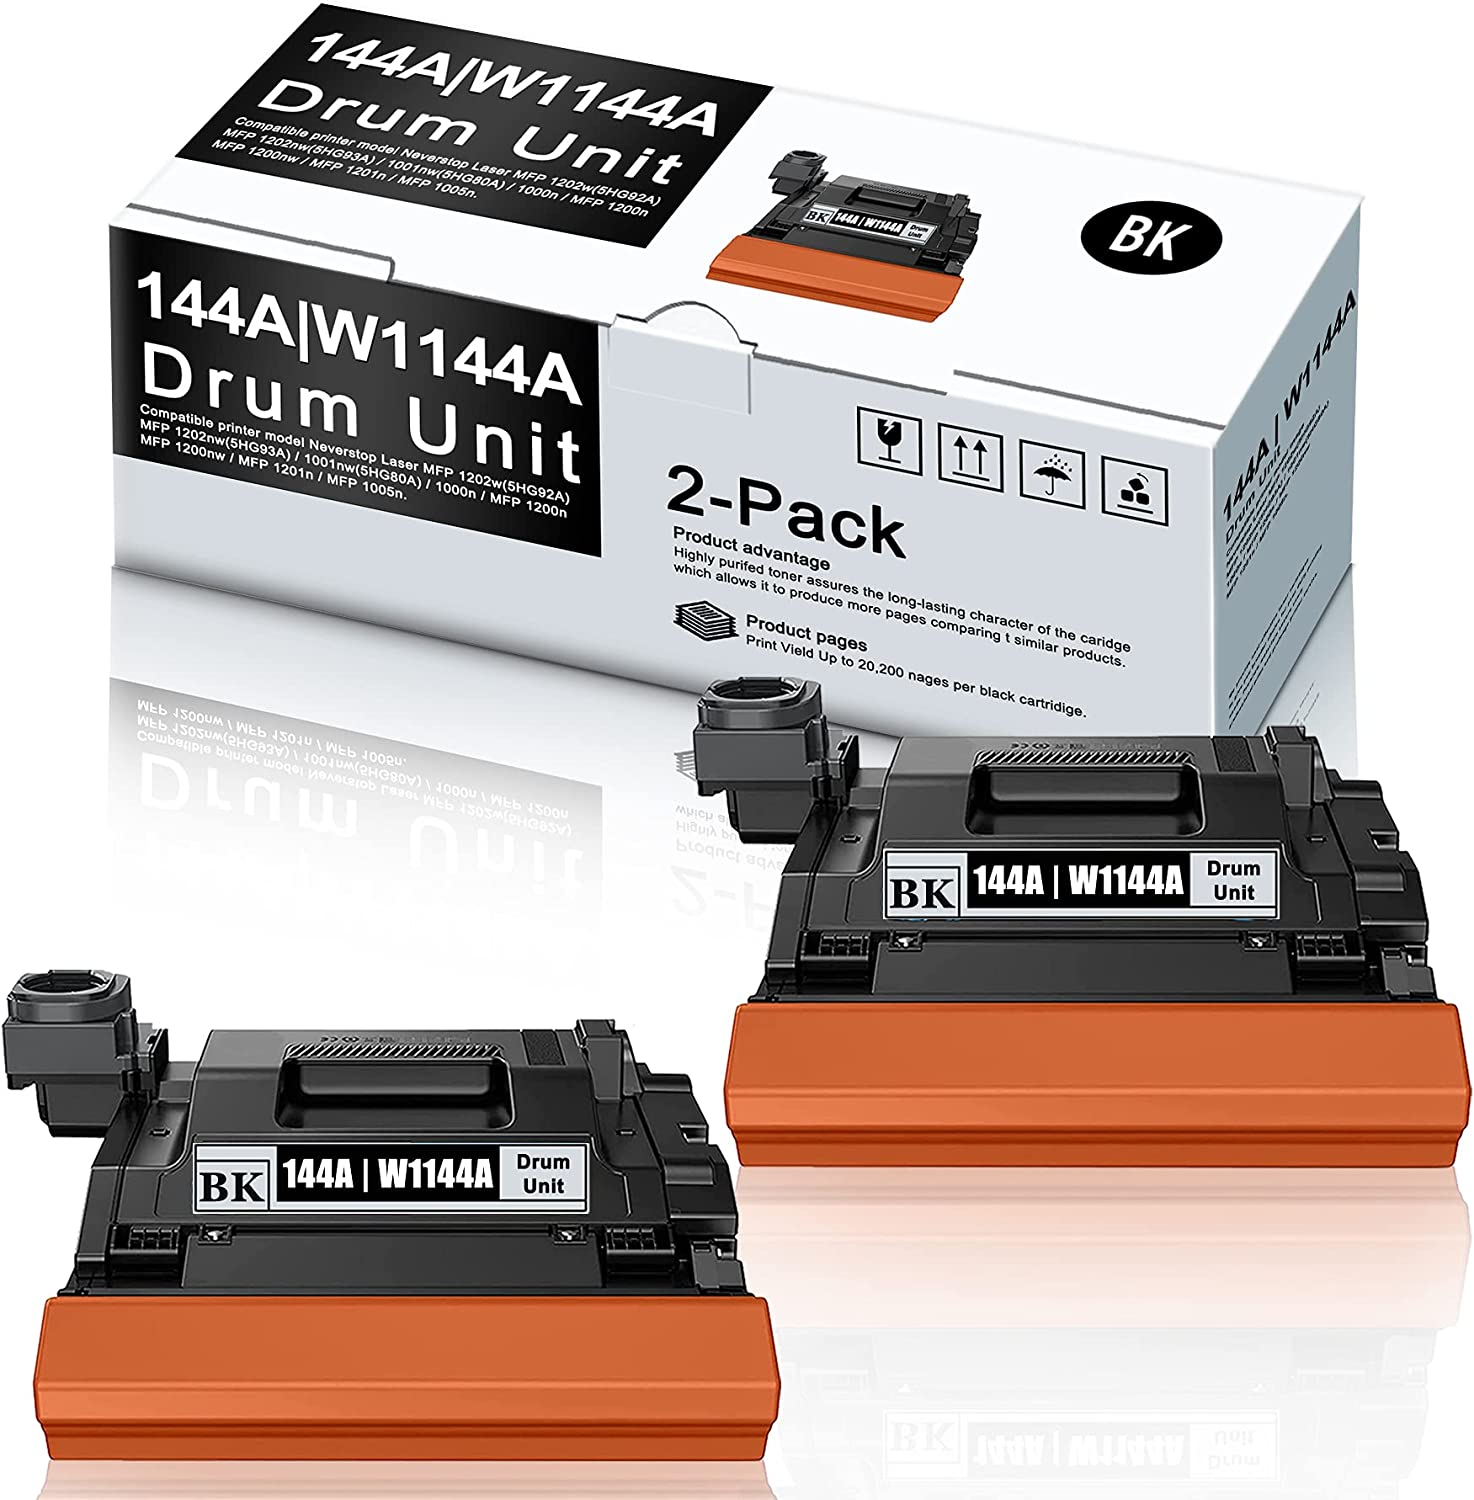 2 Pack Black Compatible 144A W1144A Drum Unit Replacement for HP Neverstop Laser MFP 1202w MFP 1202nw 1001nw 1000n MFP 1200n MFP 1200nw 1201n 1005n Printer Drum.